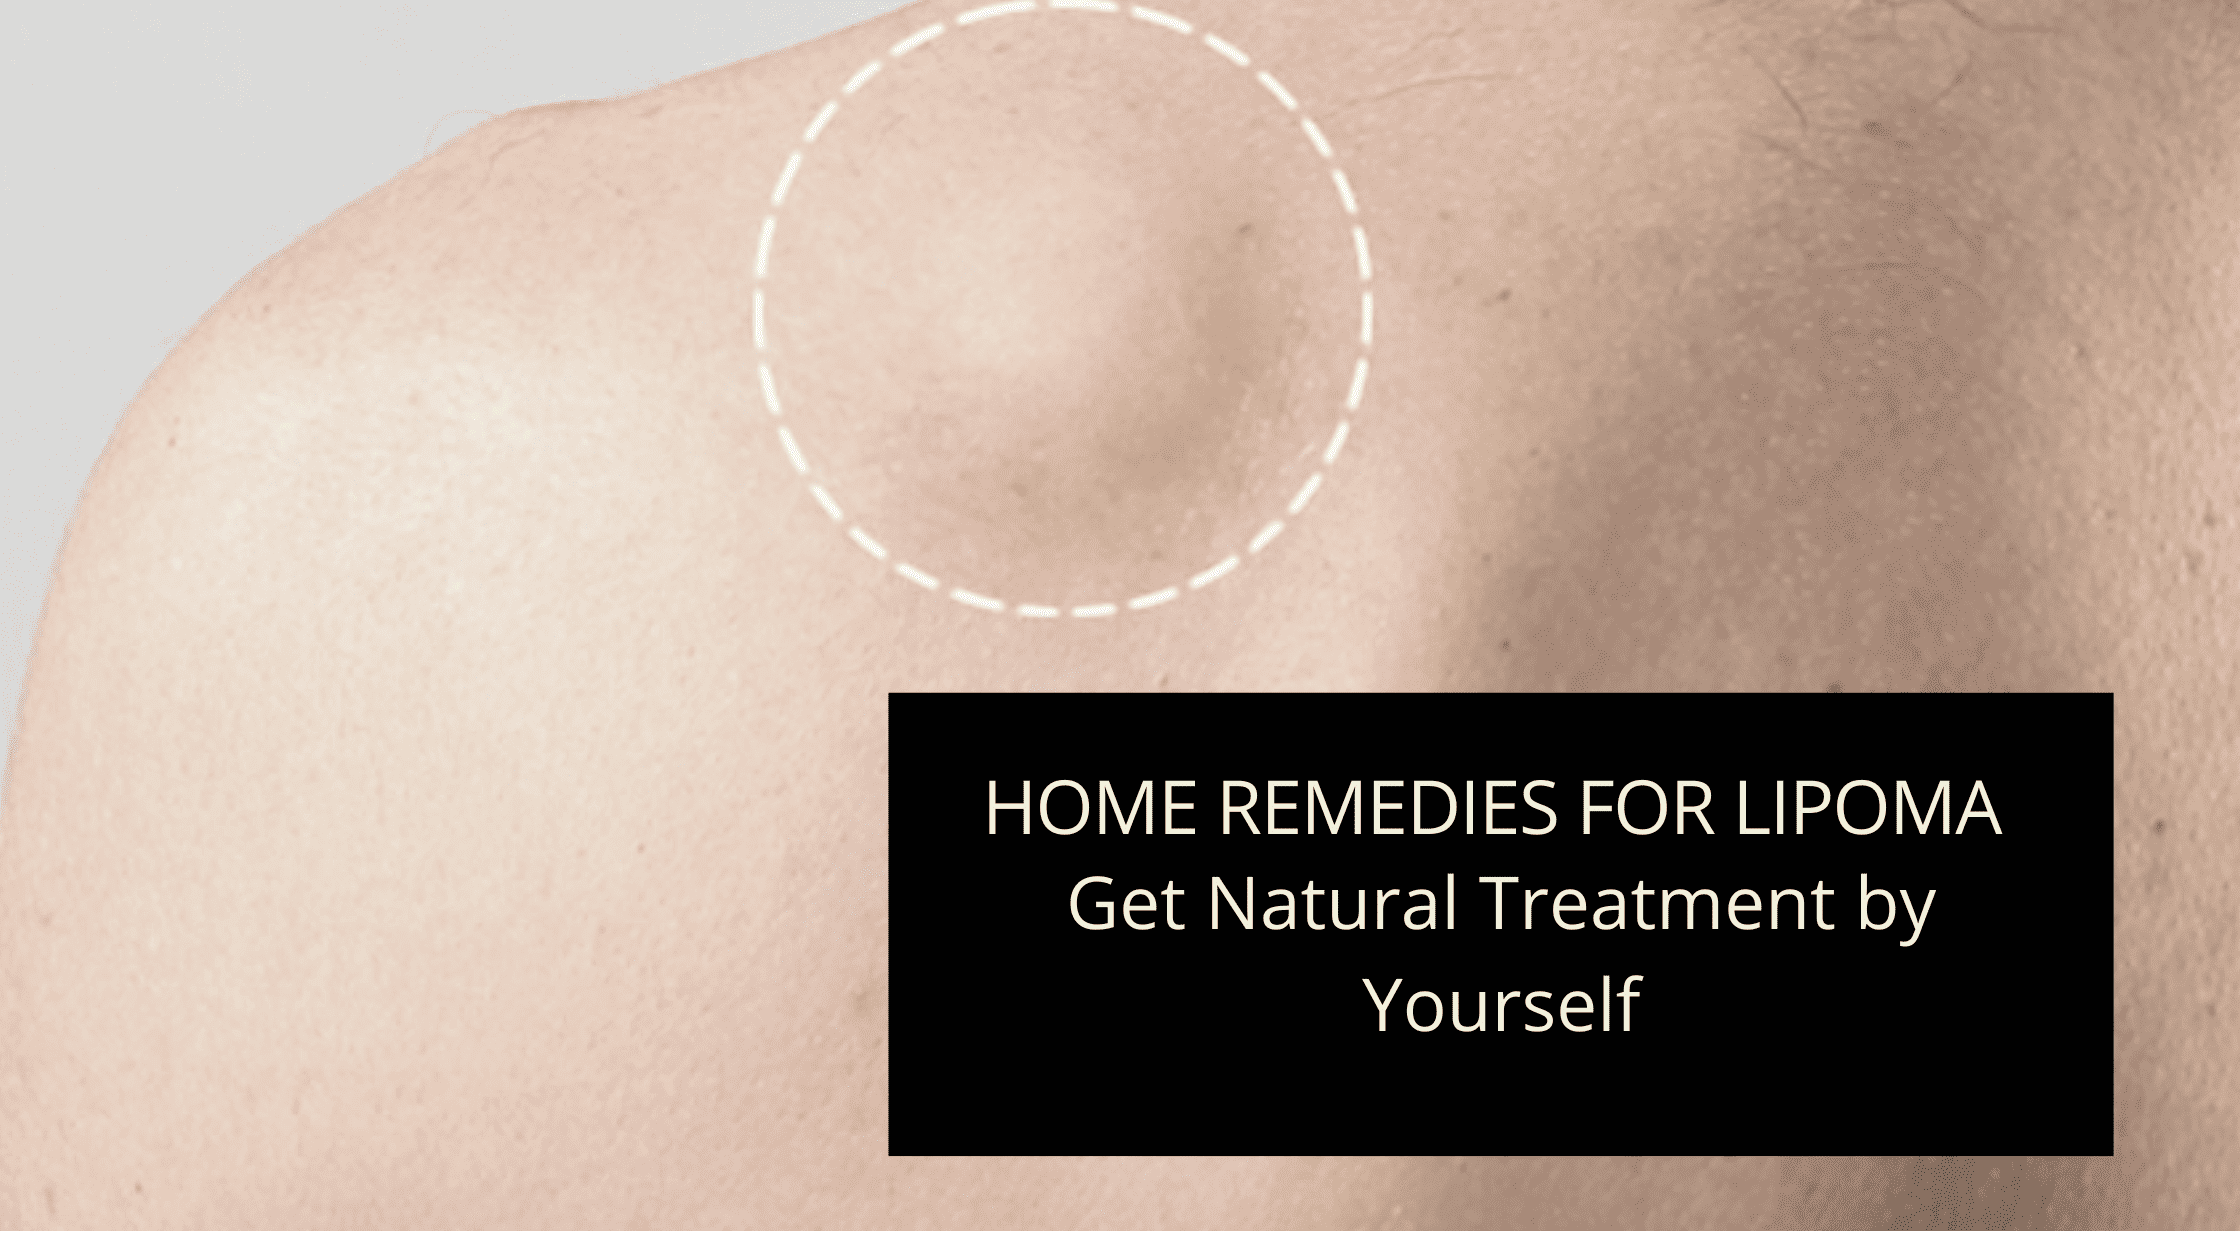 Home Remedies for Lipoma – Get Natural Treatment by Yourself